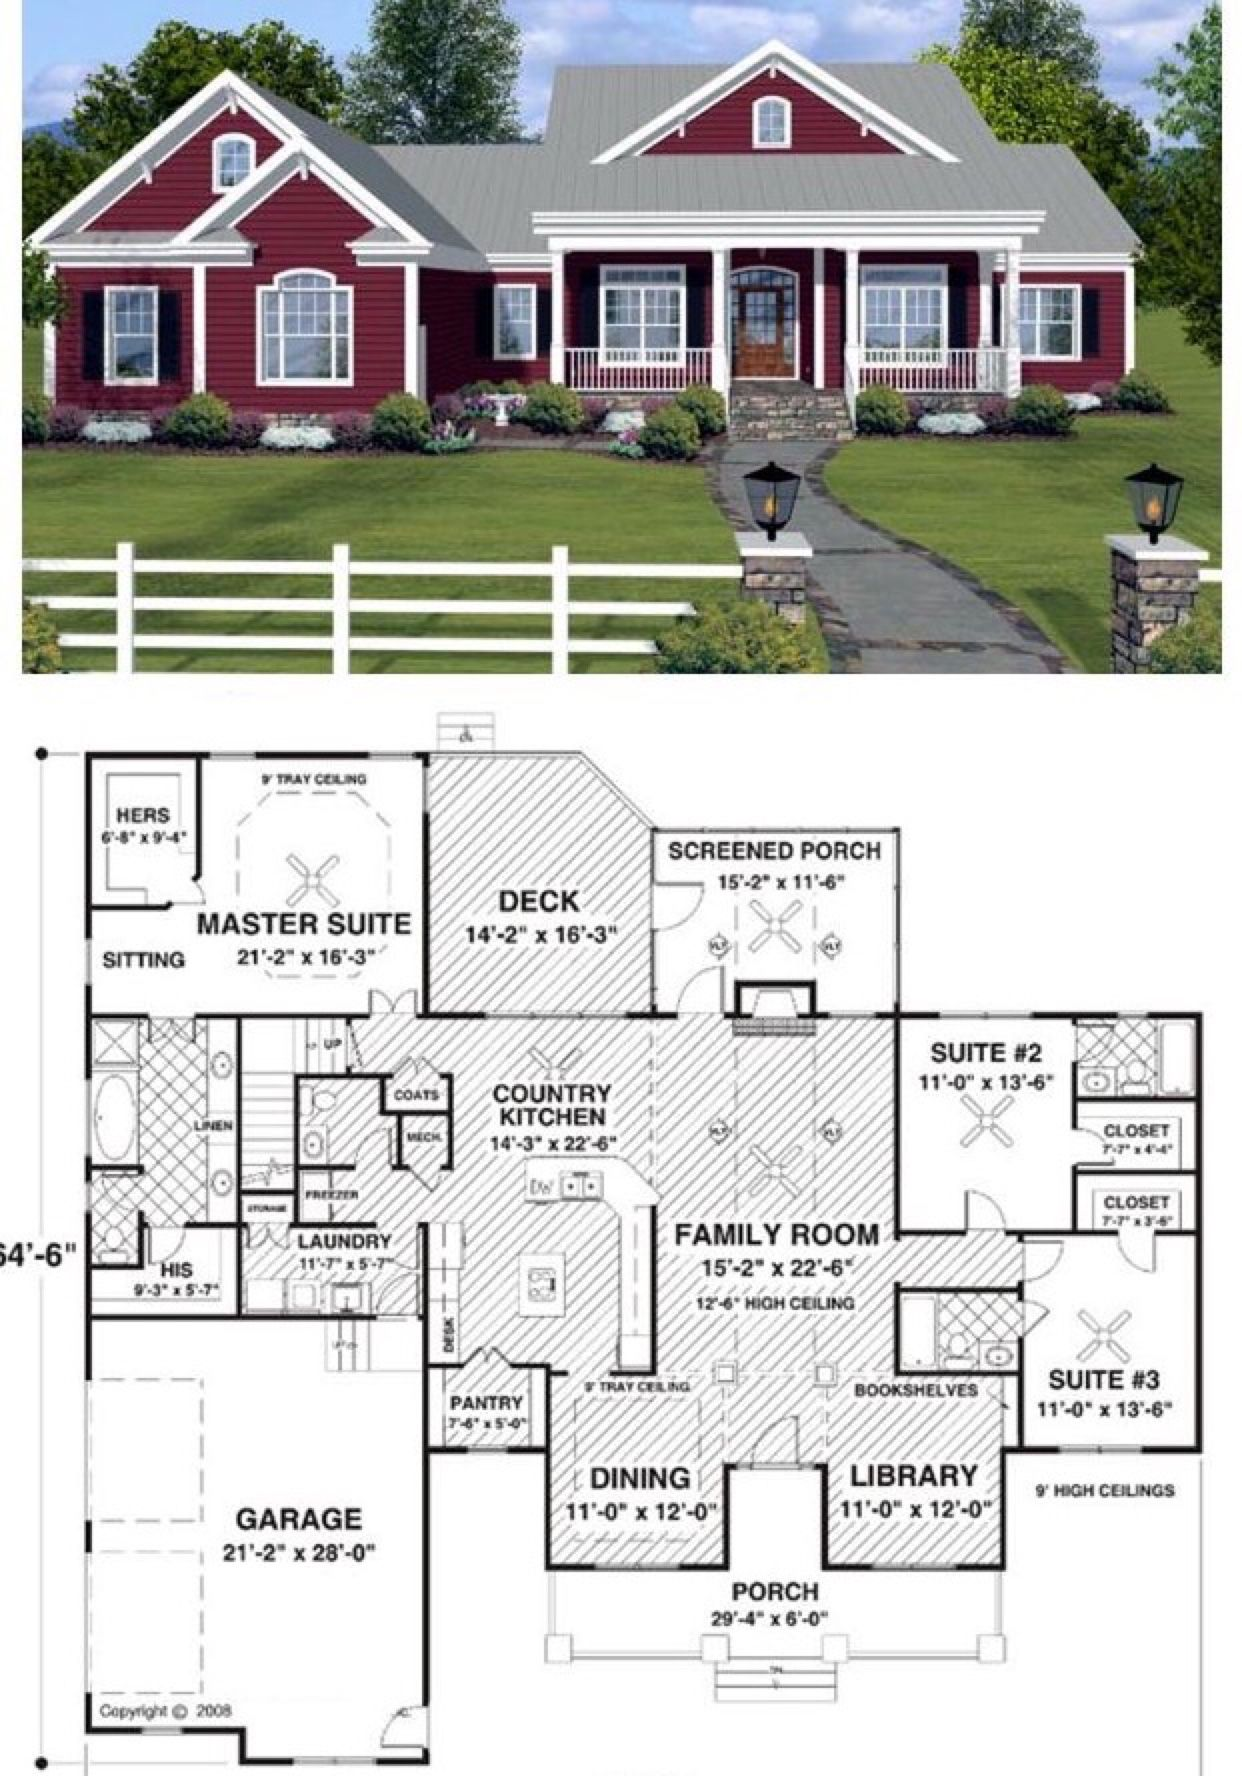 Cottage life homes in pinterest house house plans and